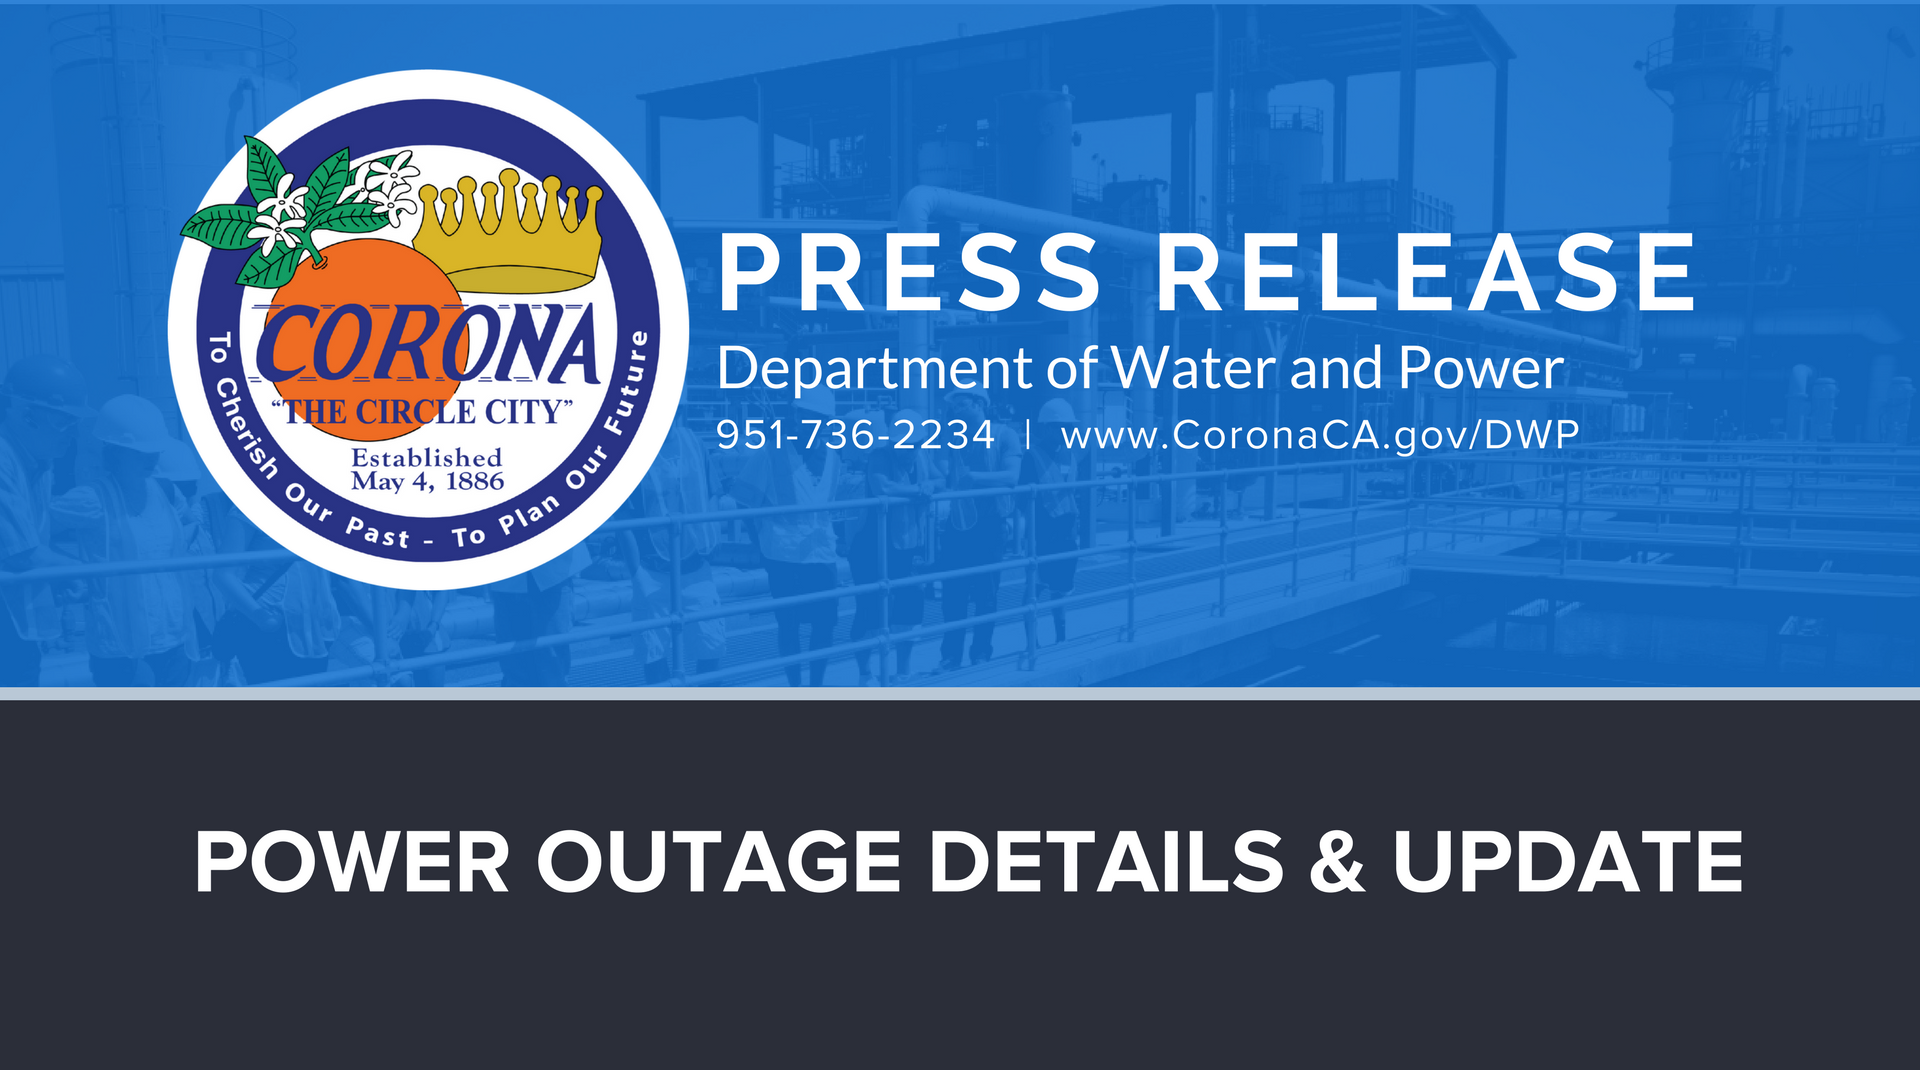 Power Outage Details & Update